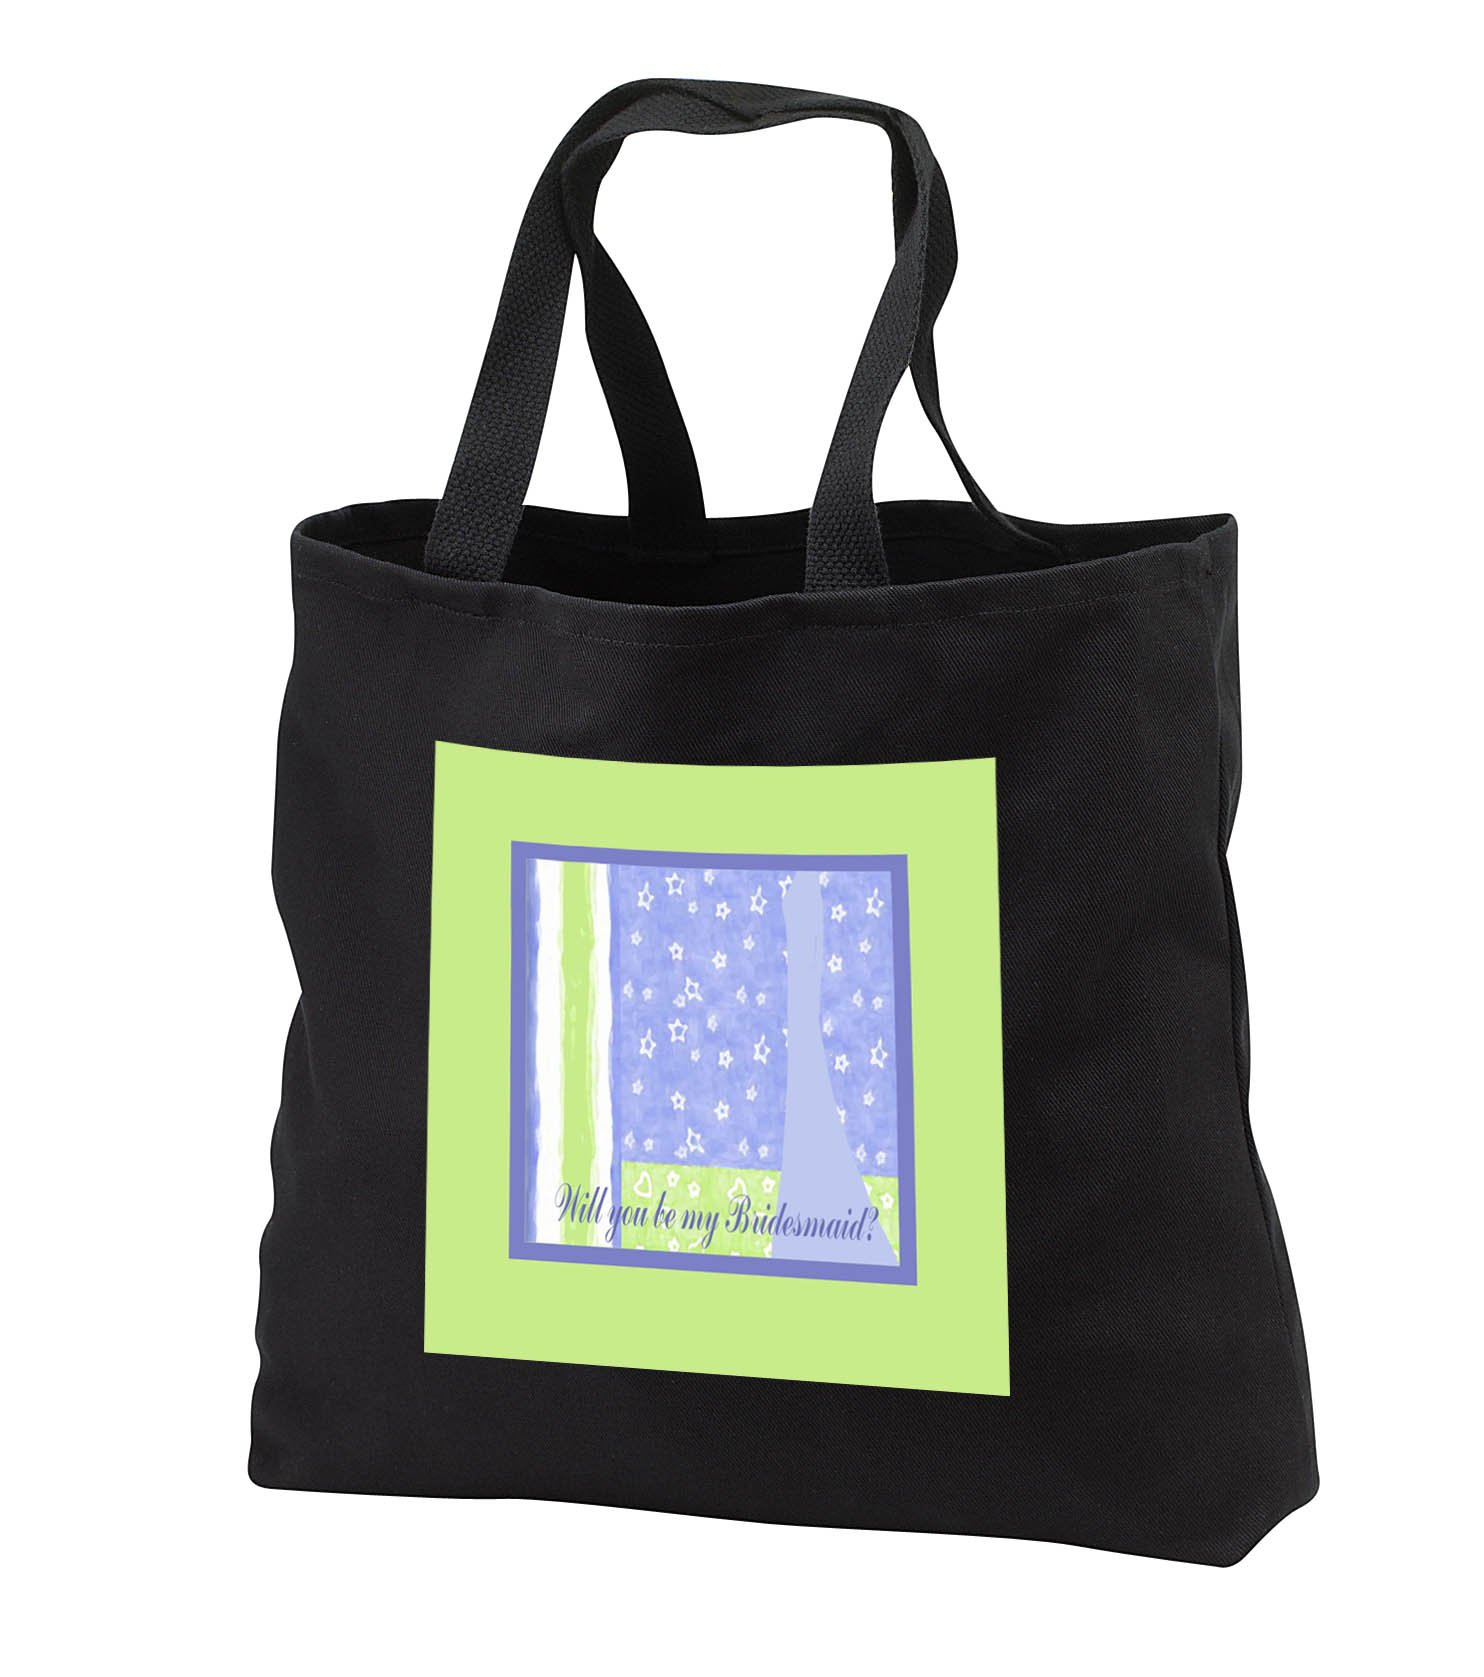 Beverly Turner Wedding Bridal Party Design - Bridesmaid Request, Dress on Stars and Lines, White, Green and Blue - Tote Bags - Black Tote Bag 14w x 14h x 3d (tb_282212_1)